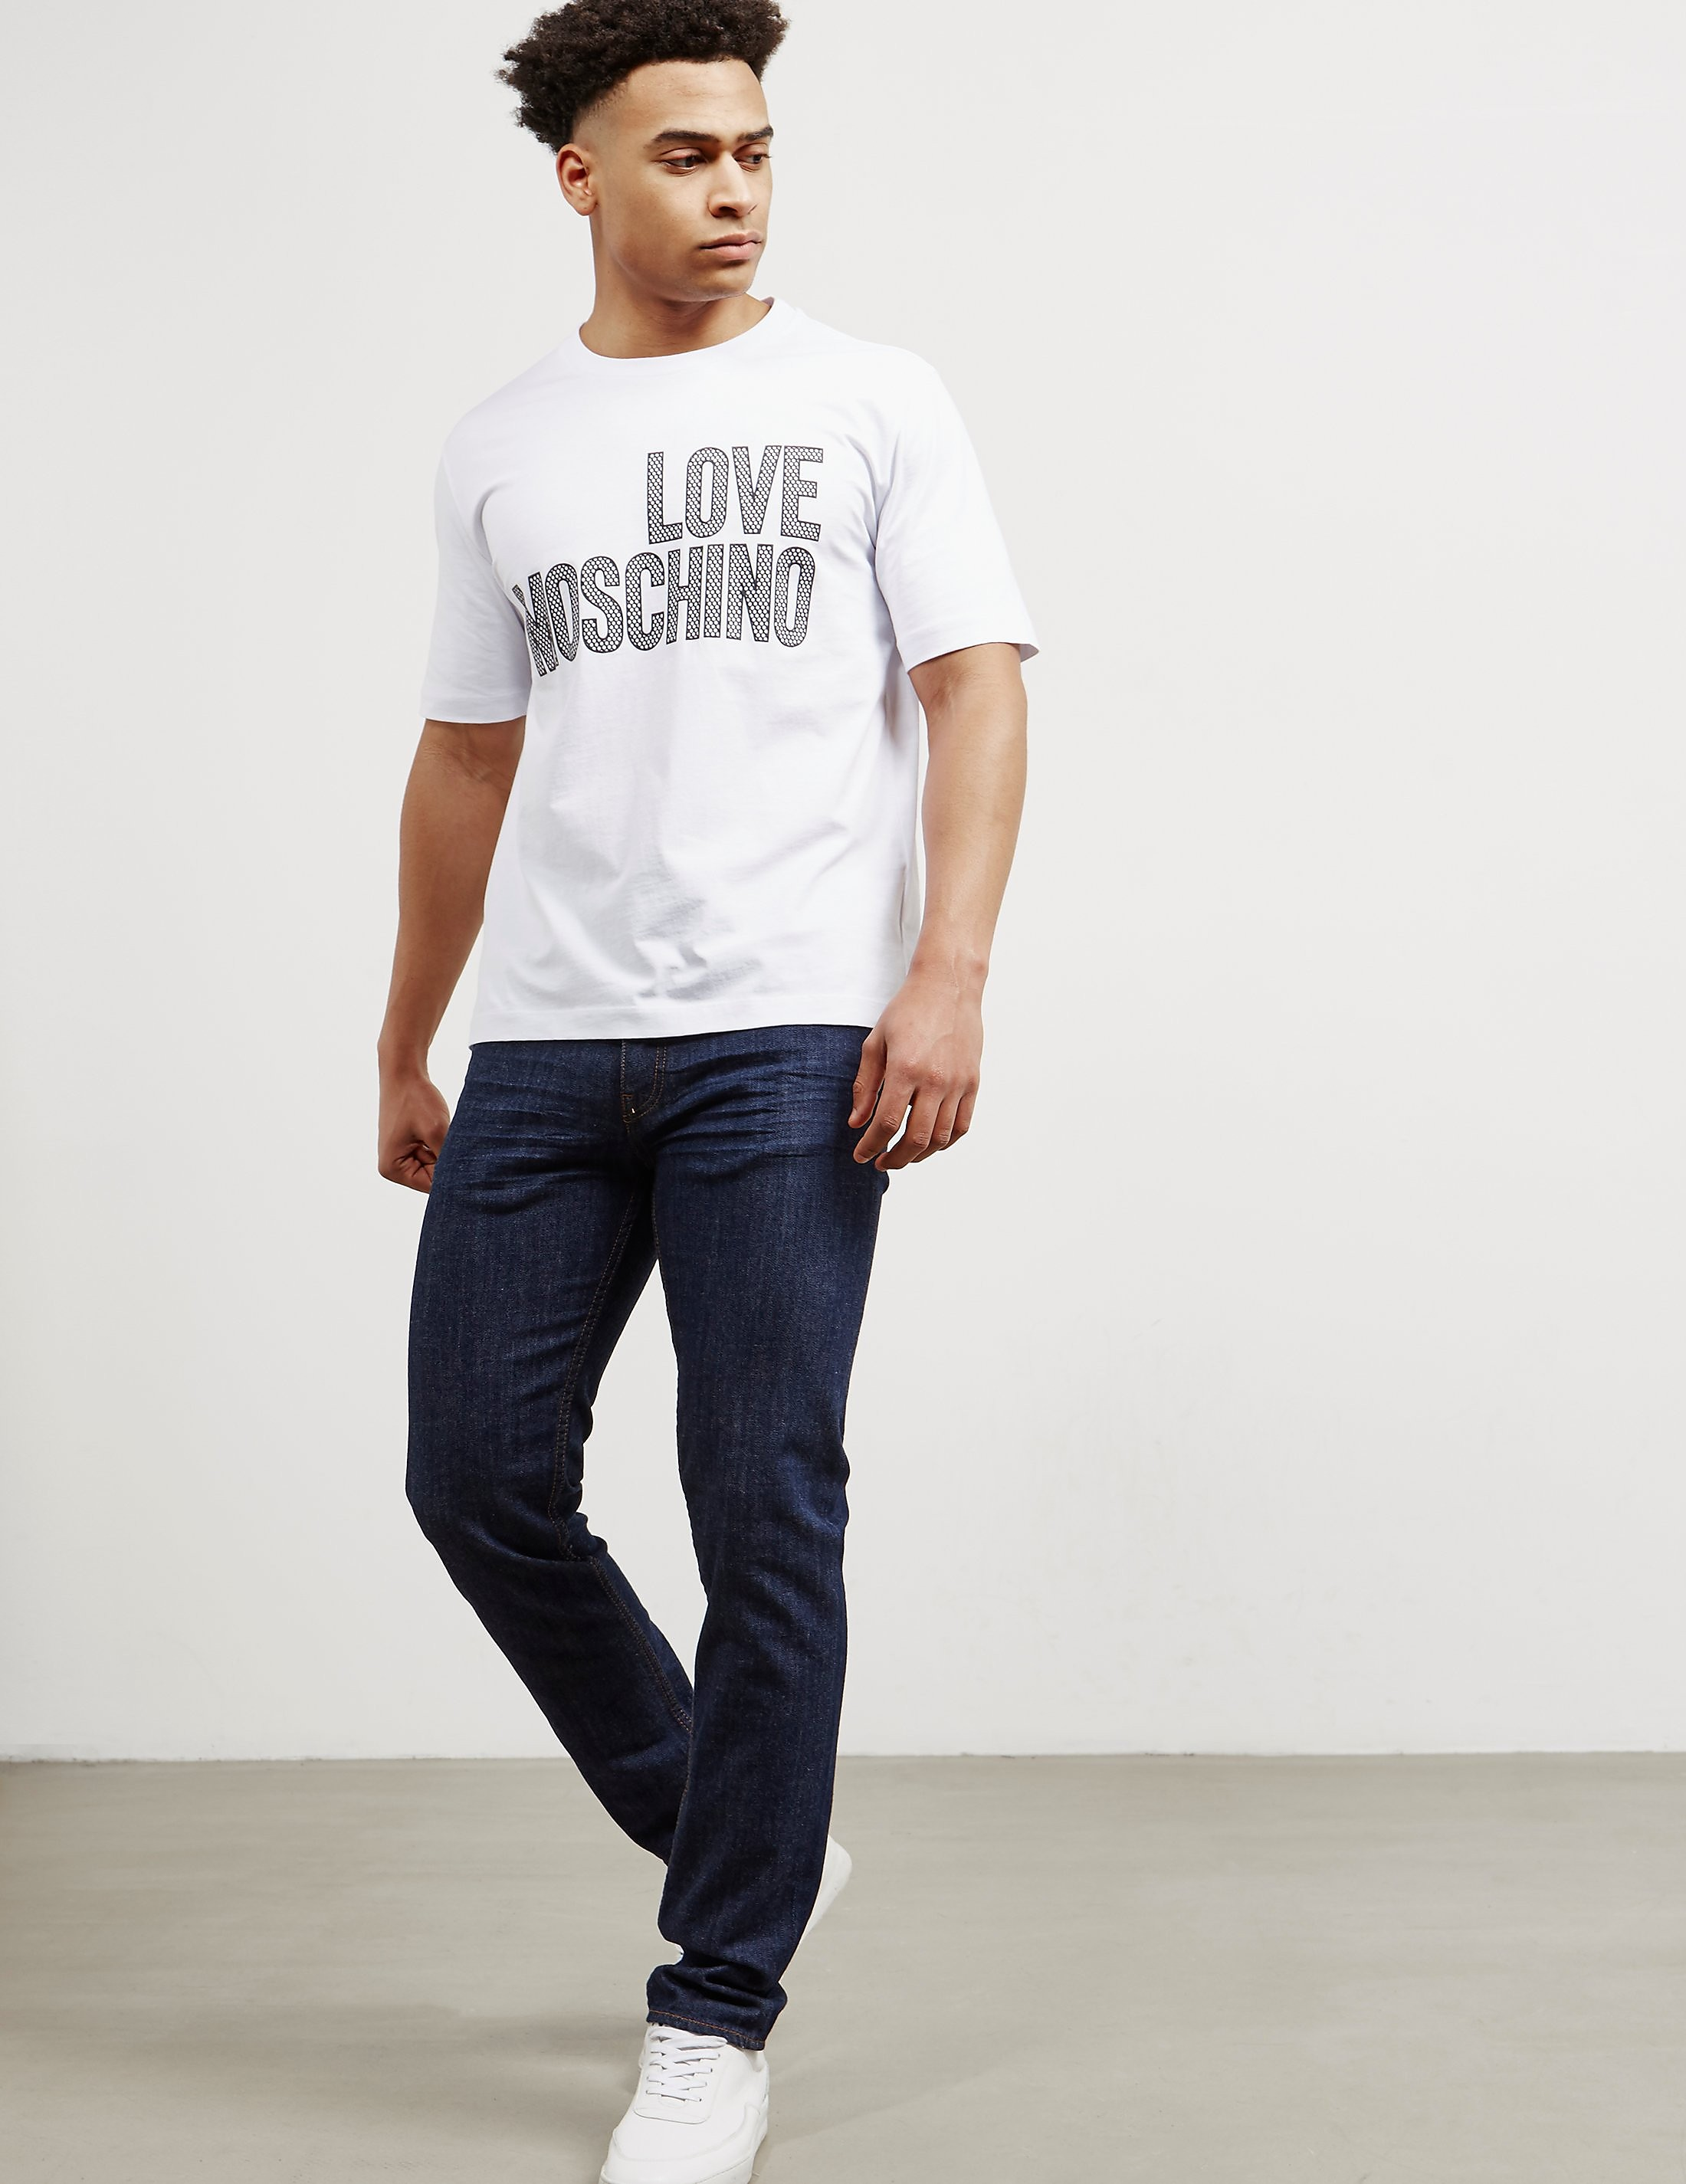 Love Moschino Gold Plaque Jeans - Online Exclusive